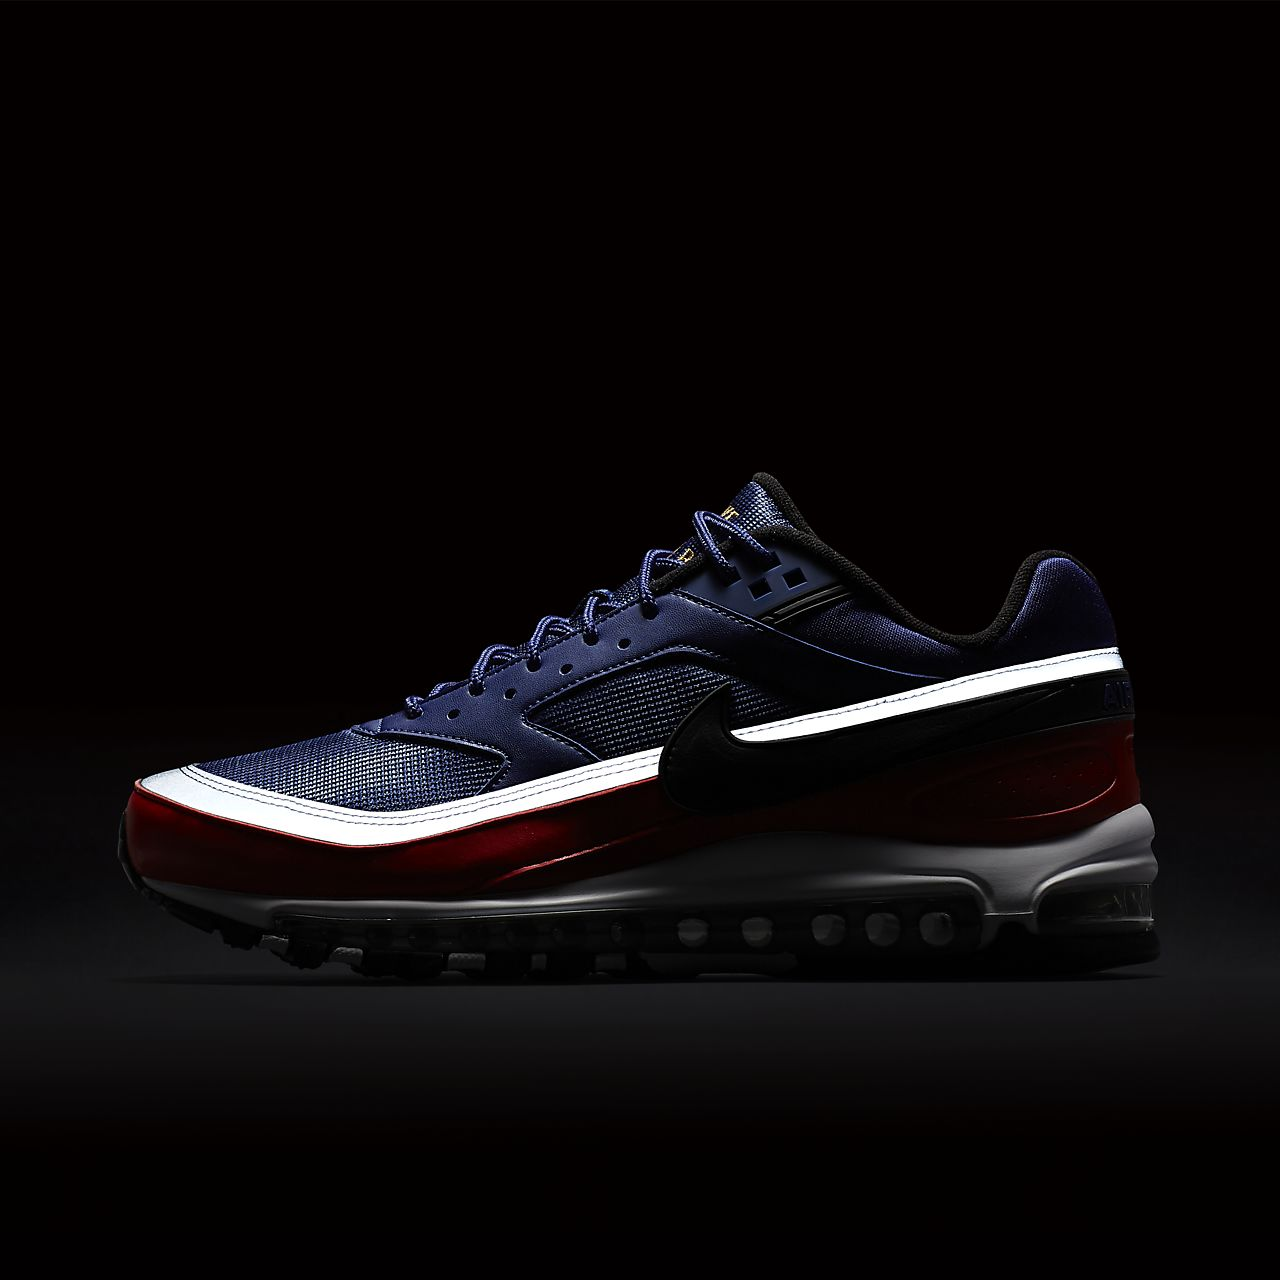 competitive price e1601 7909a ... Nike Air Max 97 BW Men s Shoe